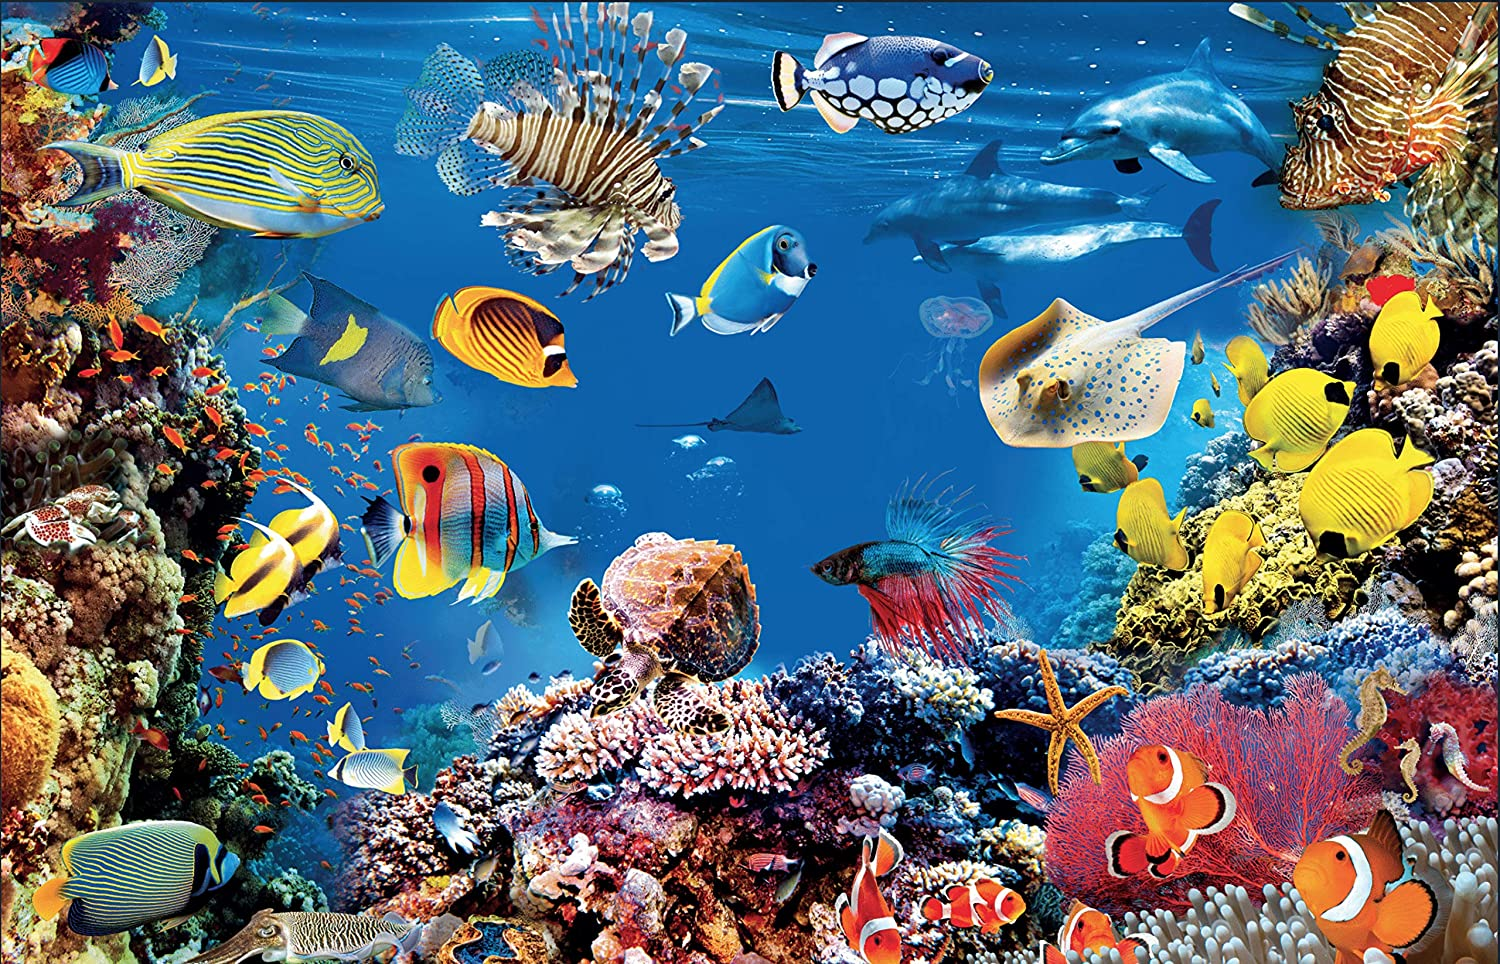 Quazzie Design Jigsaw Puzzles for Adults 1000 Piece Ocean Scene with Fish a Jigsaw Puzzle for Adults and Kids and Young Adults Cool Undersea Colorful Hard Nature Jigsaw Puzzle Large Size 20 x 29.5In.